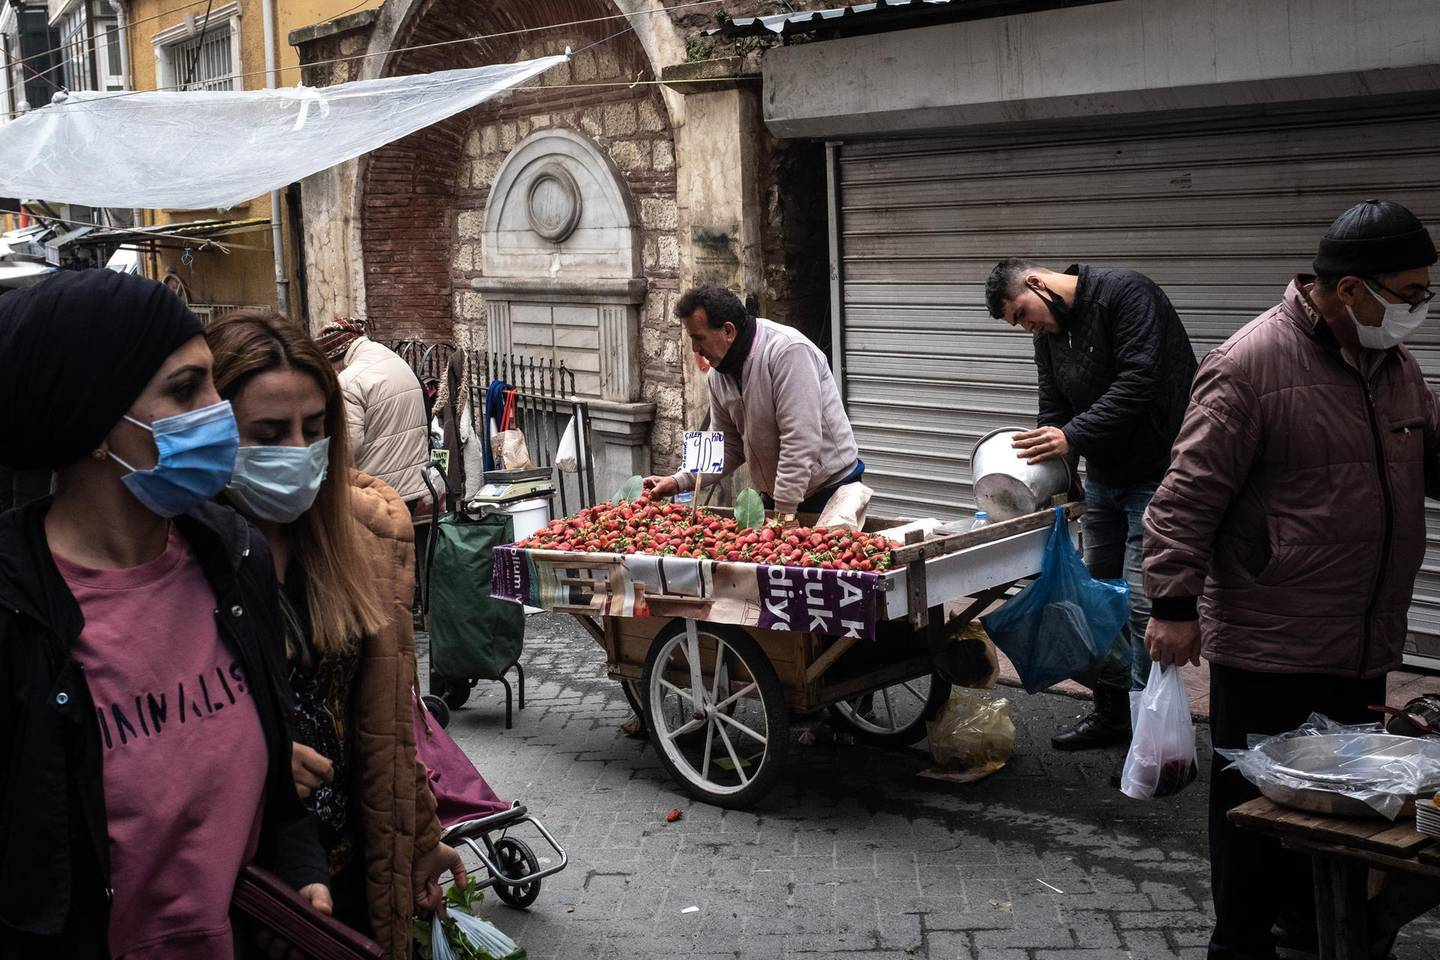 ISTANBUL, TURKEY - MARCH 22: People shop at a local street market on March 22, 2021 in Istanbul, Turkey. Turkey's Lira plummeted as much as 15% to hit 8.39 per US dollar in the first day of trading after Turkey's President Recep Tayyip Erdogan replaced Central Bank Governor Naci Agbal triggering fears of another currency crisis.  (Photo by Chris McGrath/Getty Images)